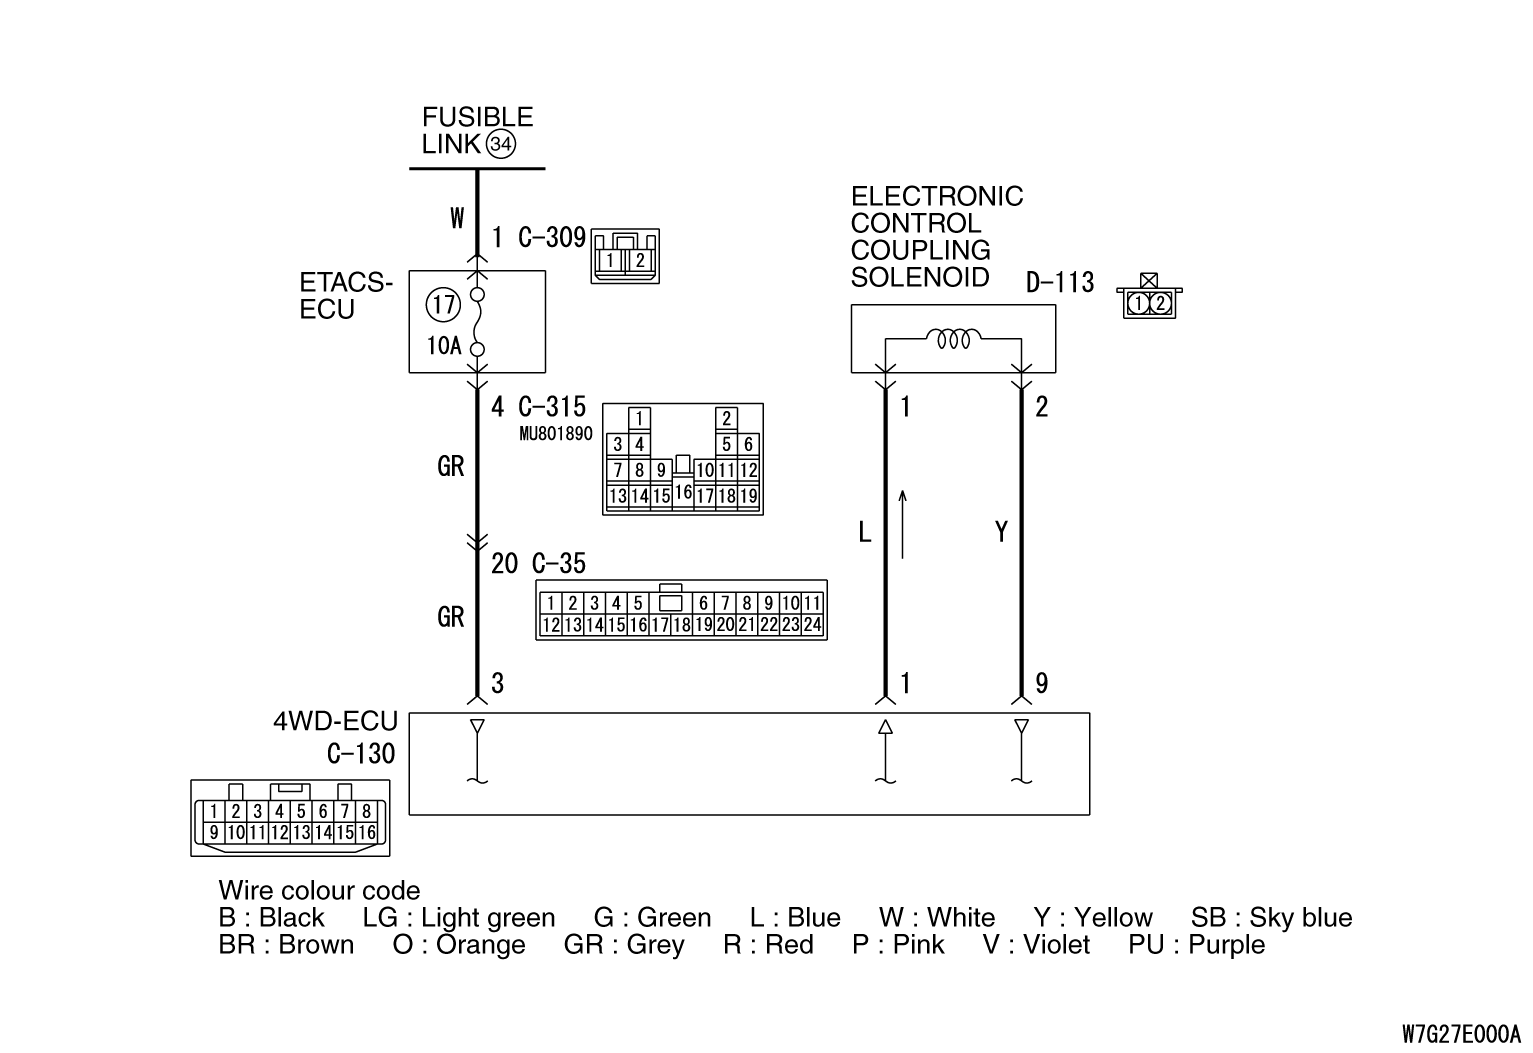 Code No  C145D: Wiring harness and coupling coil open circuit failure